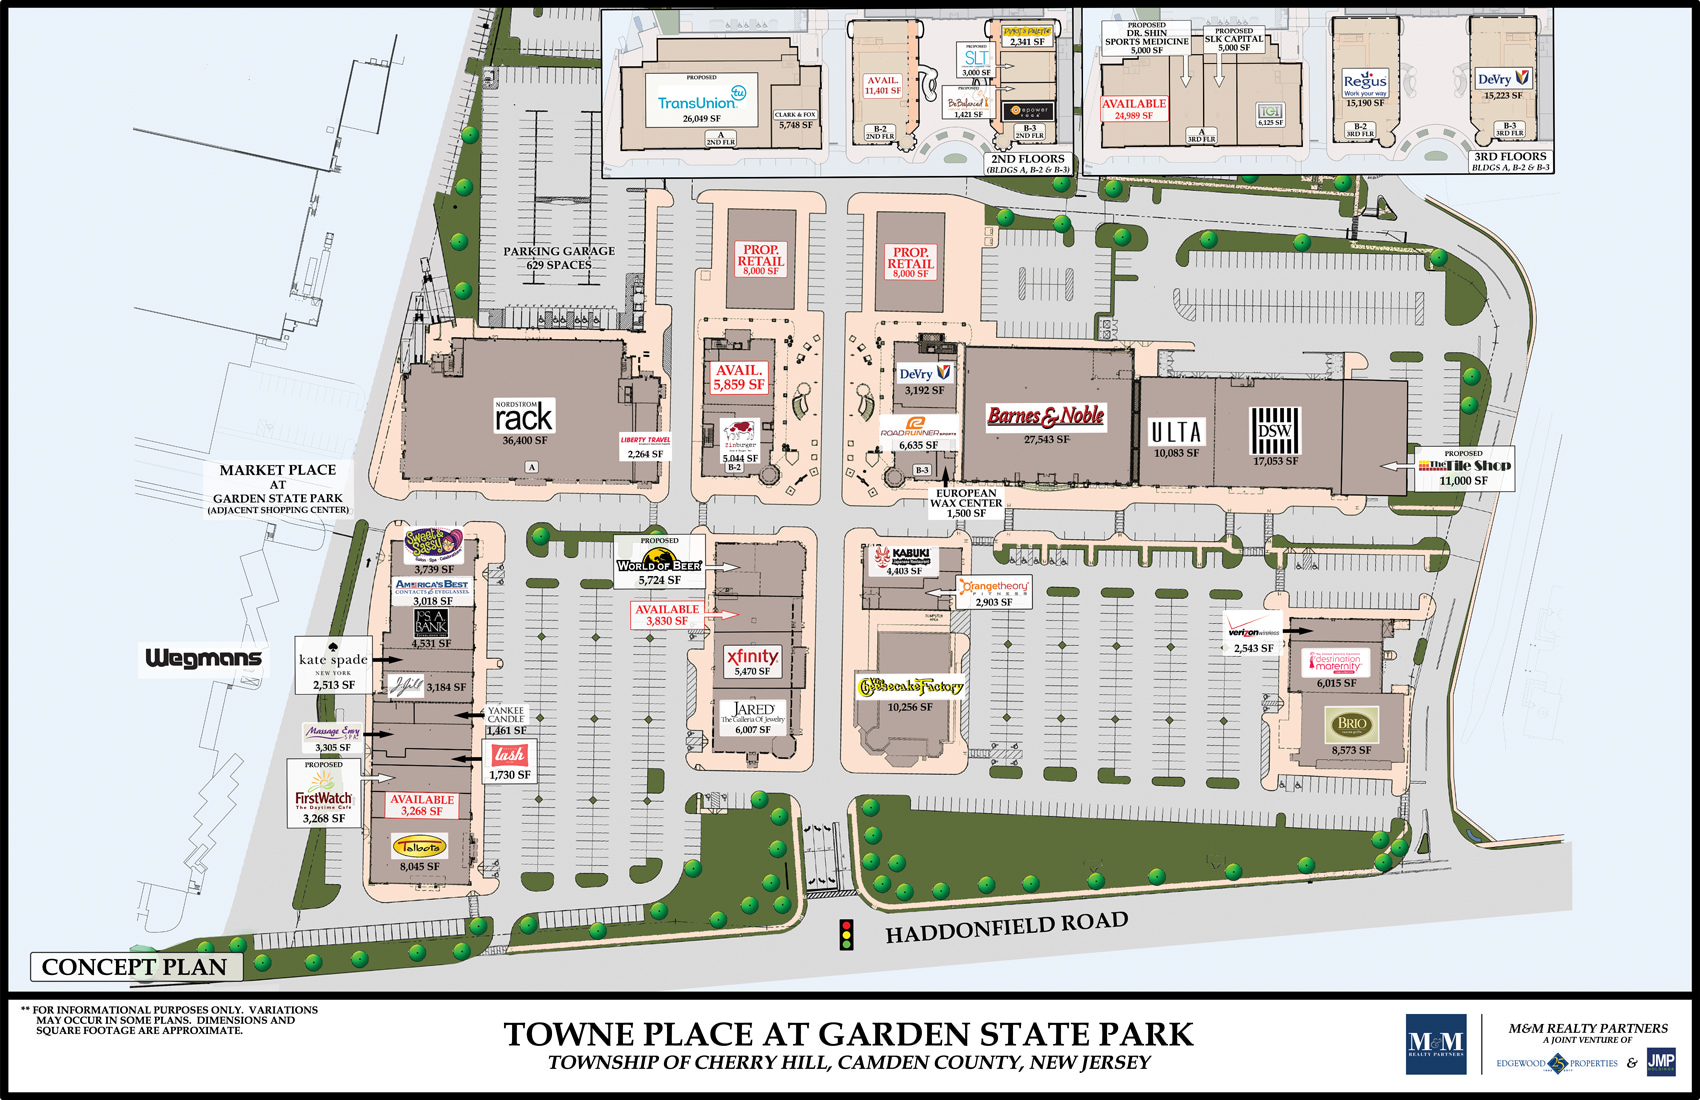 Towne Place At Garden State Park Commercial Space In New Jersey Leasing Plans